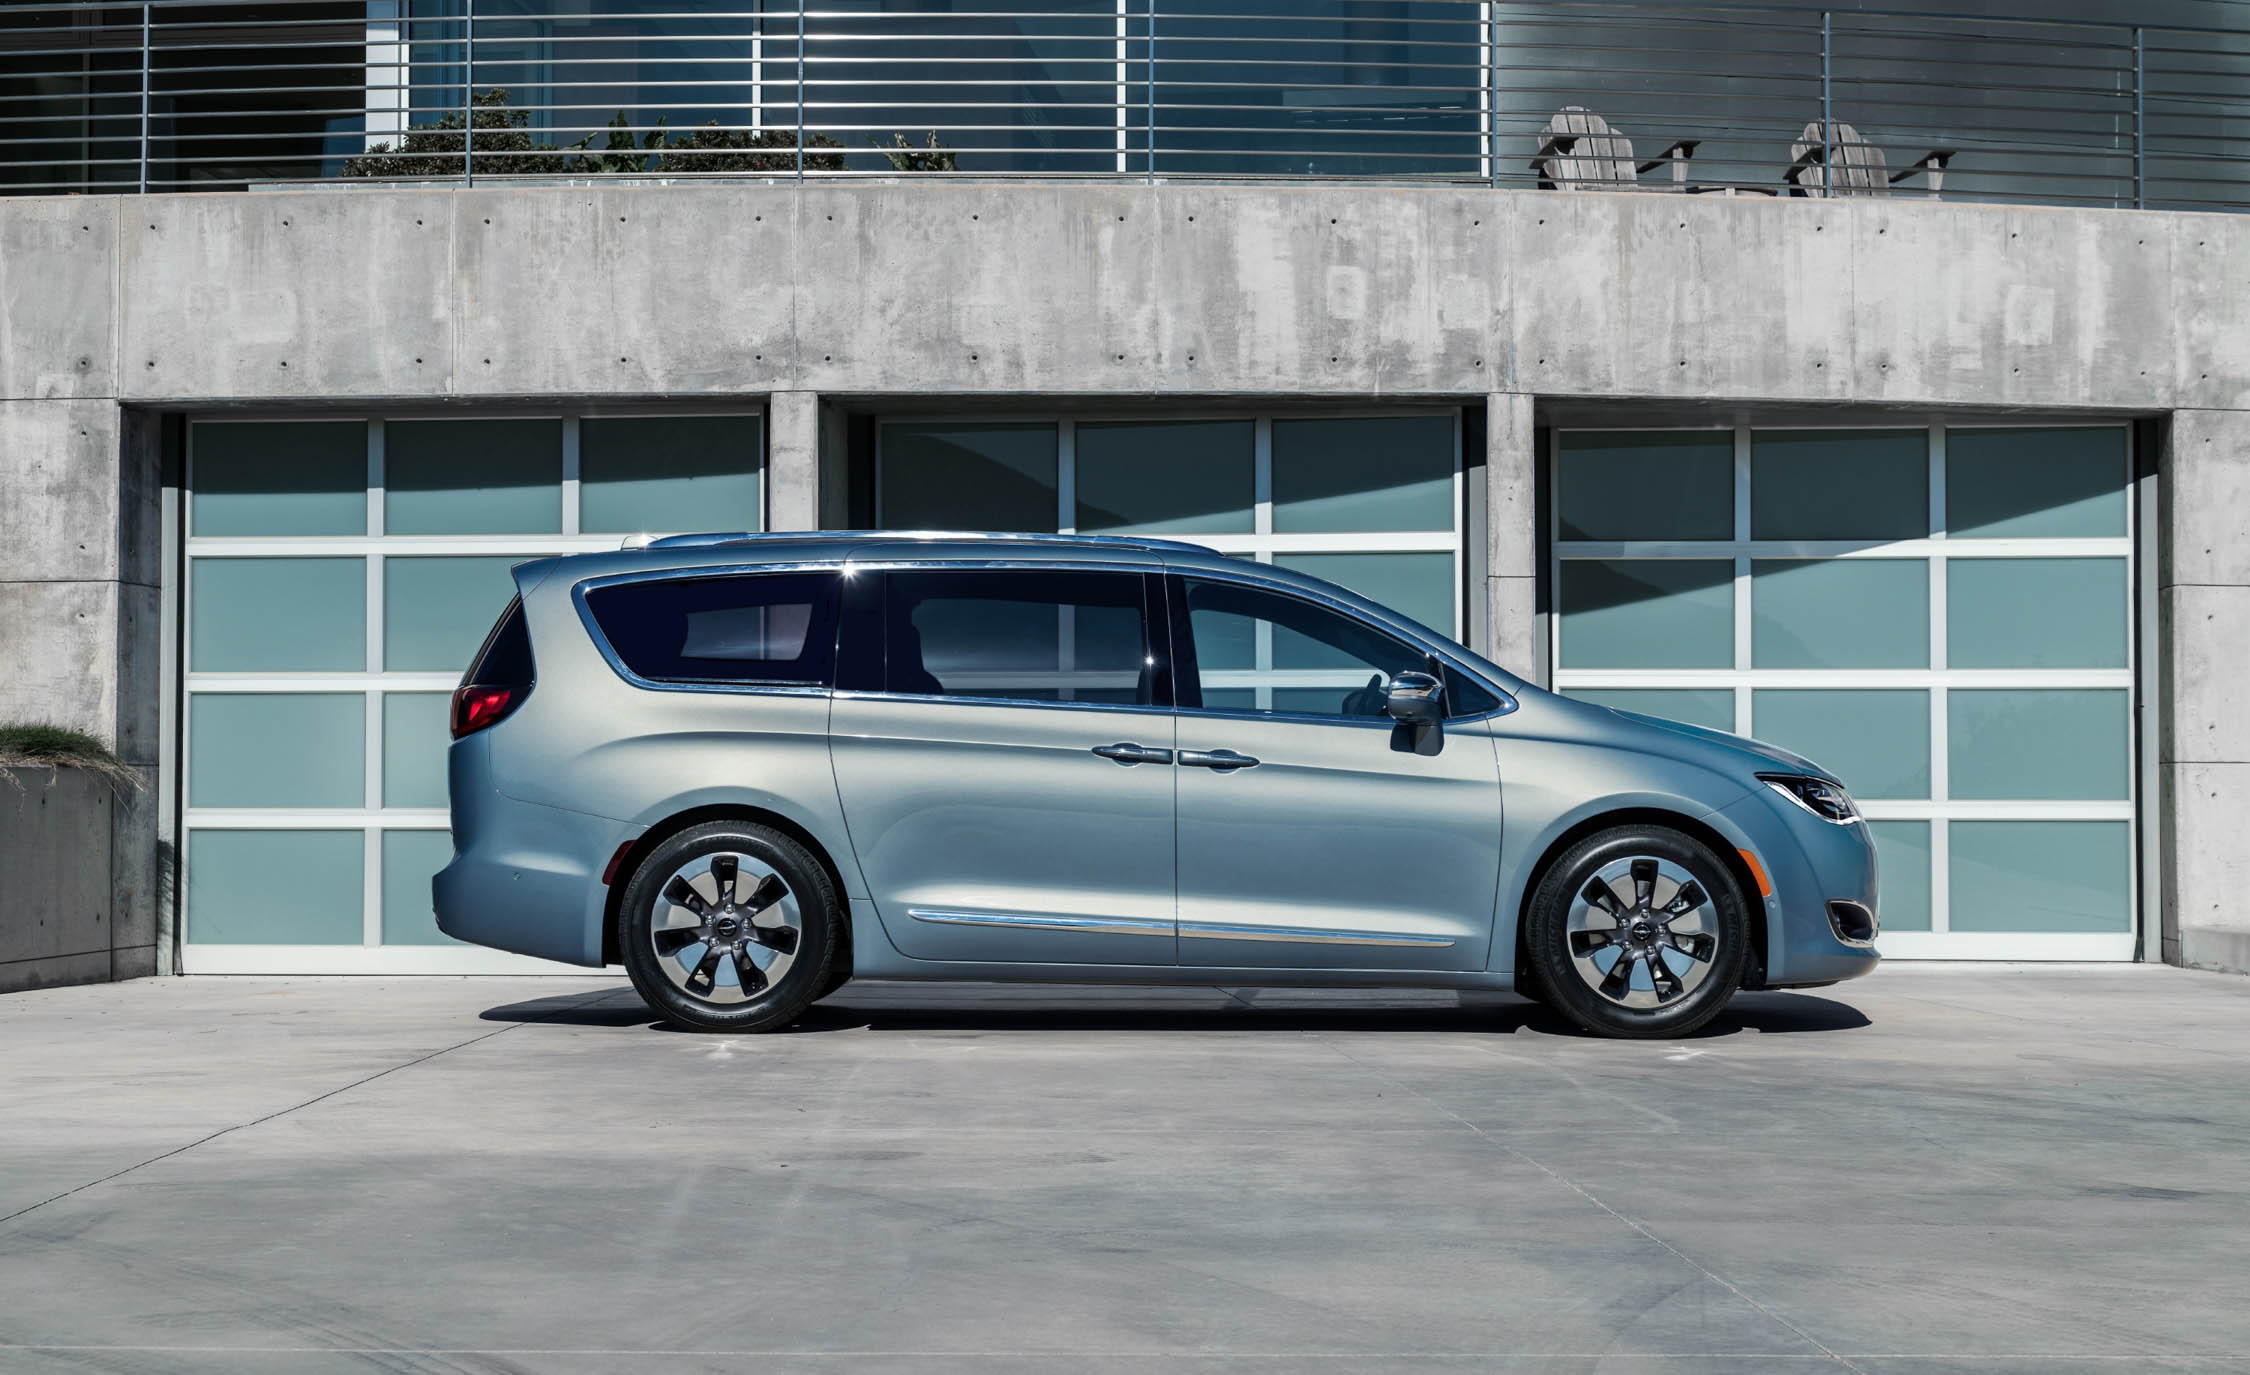 2017 Chrysler Pacifica Hybrid (Photo 3 of 10)